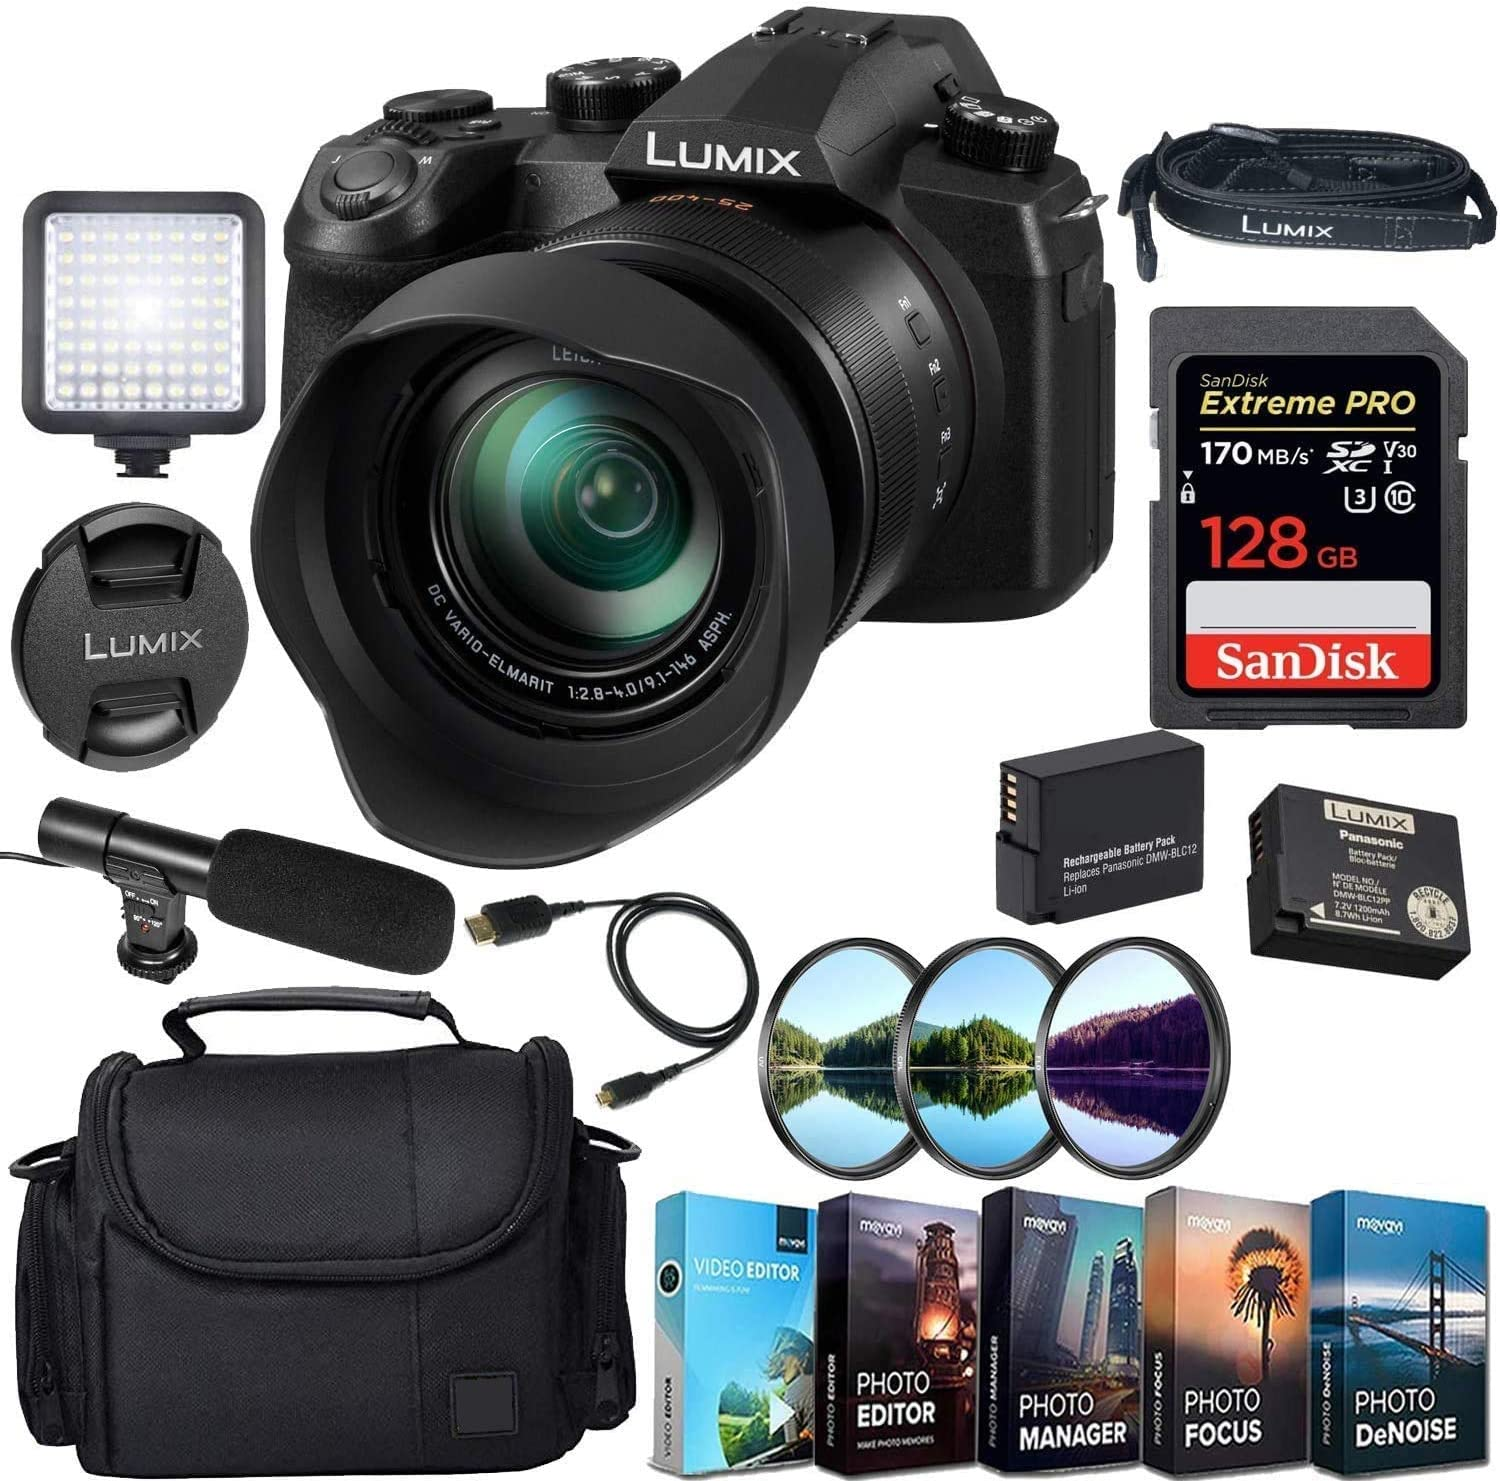 Panasonic Lumix DC-FZ1000 II Digital Camera with 128GB Extreme Sandisk Card, Camera Case, Micriphone, LED, 3pcs Filter Kit & More Accessory Kit